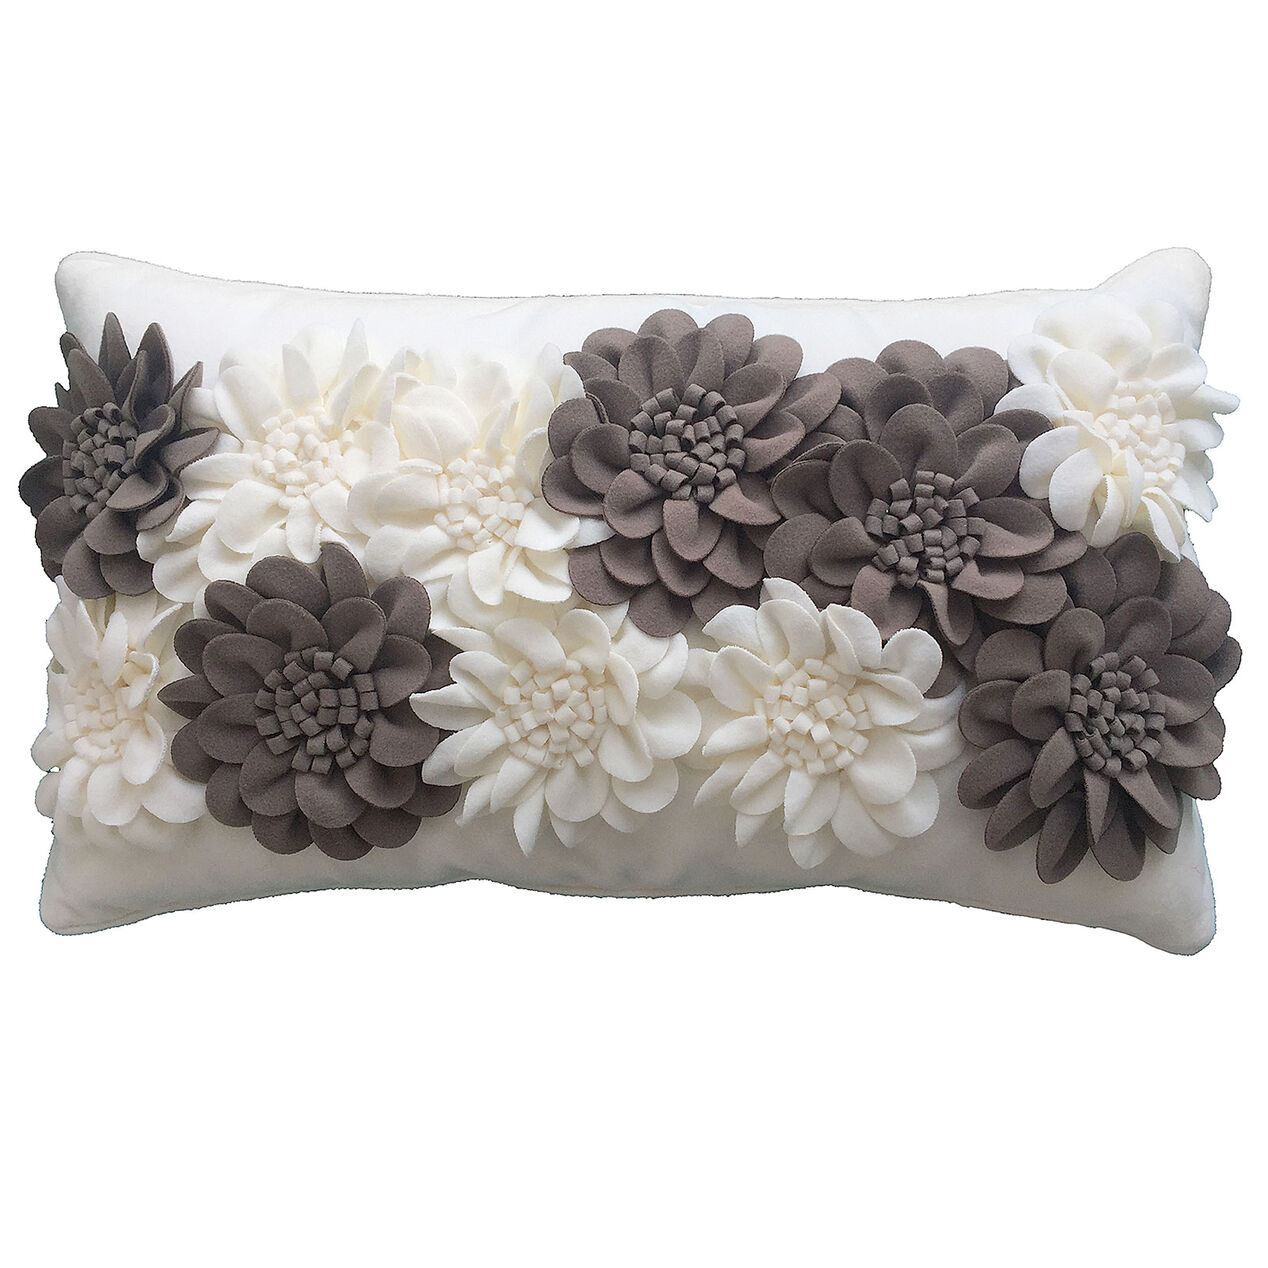 Picture of White Cierra Felt Floral Pillow  14x24 in. At Home   The Home Decor Superstore